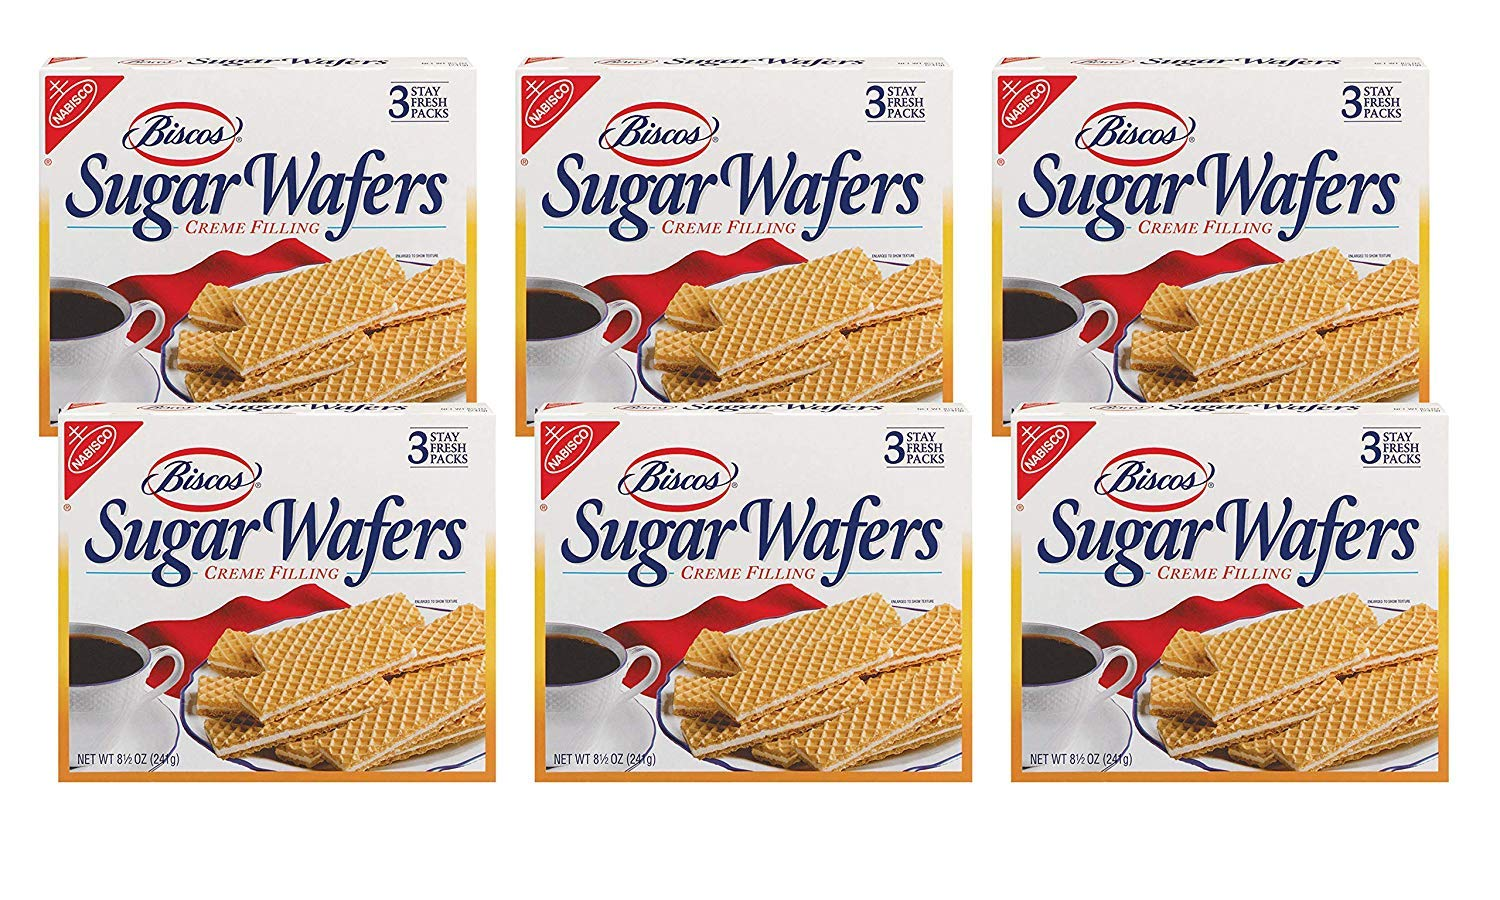 Biscos Sugar Wafers with Creme Filling, 8.5 Ounce (Pack of 6) (12 Pack) by Biscos